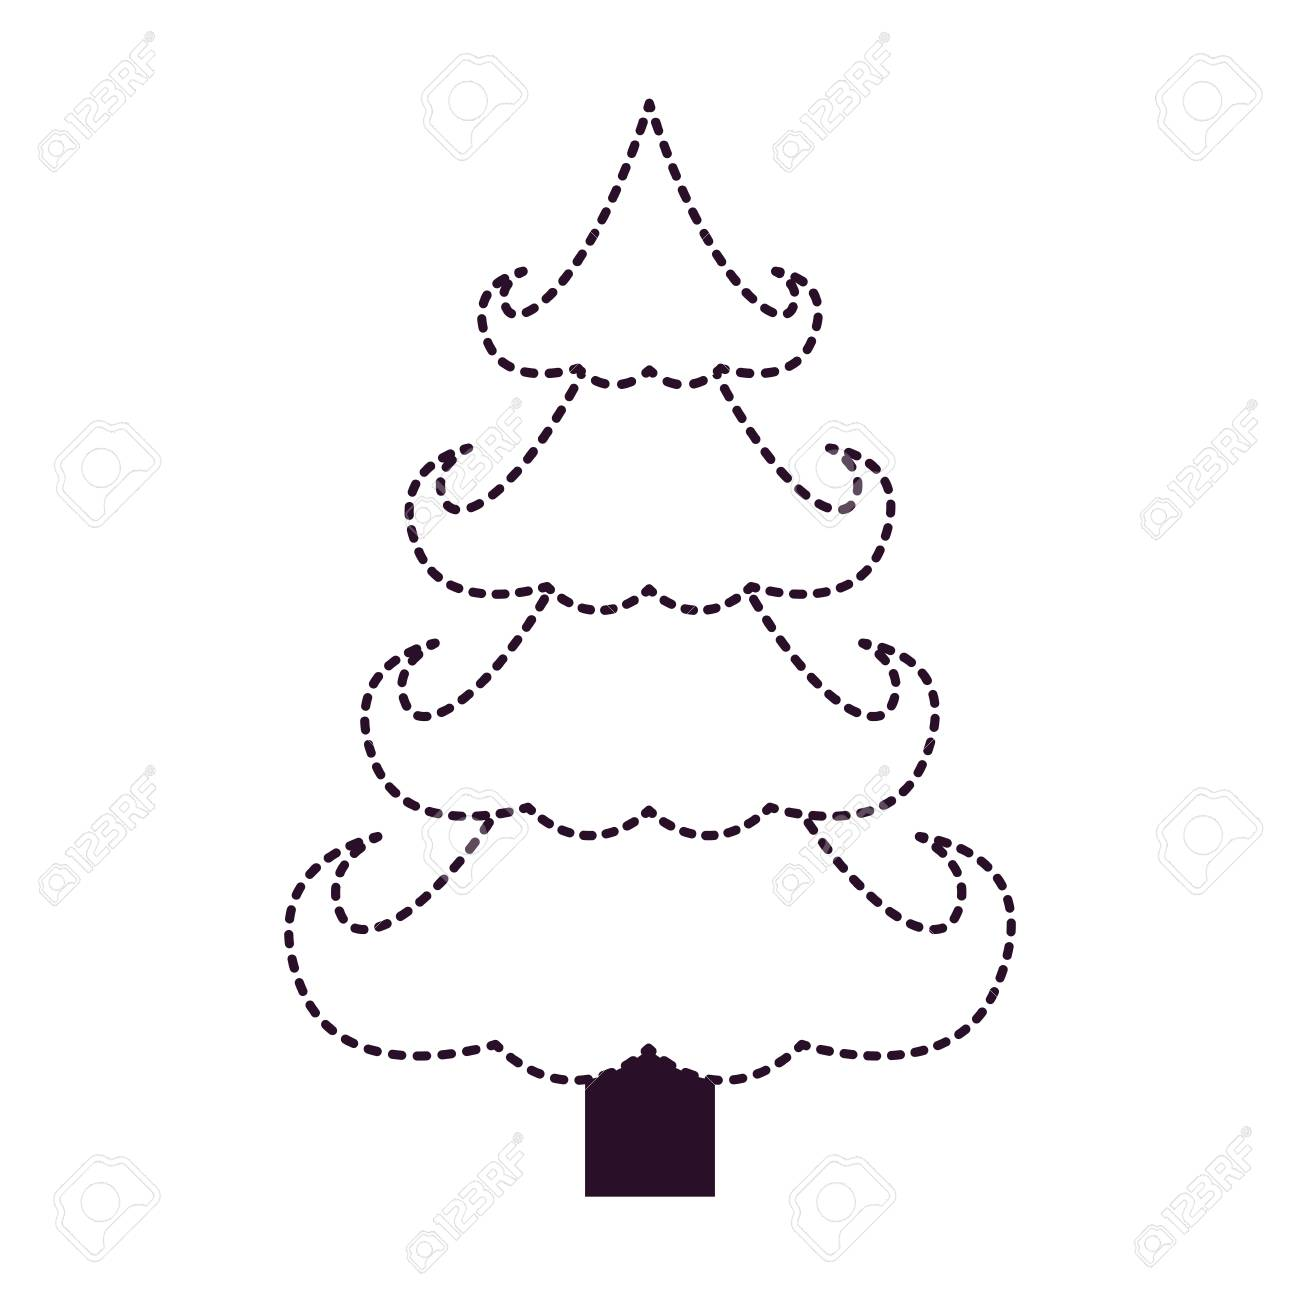 Christmas tree on dotted line, black and white, silhouette illustration.